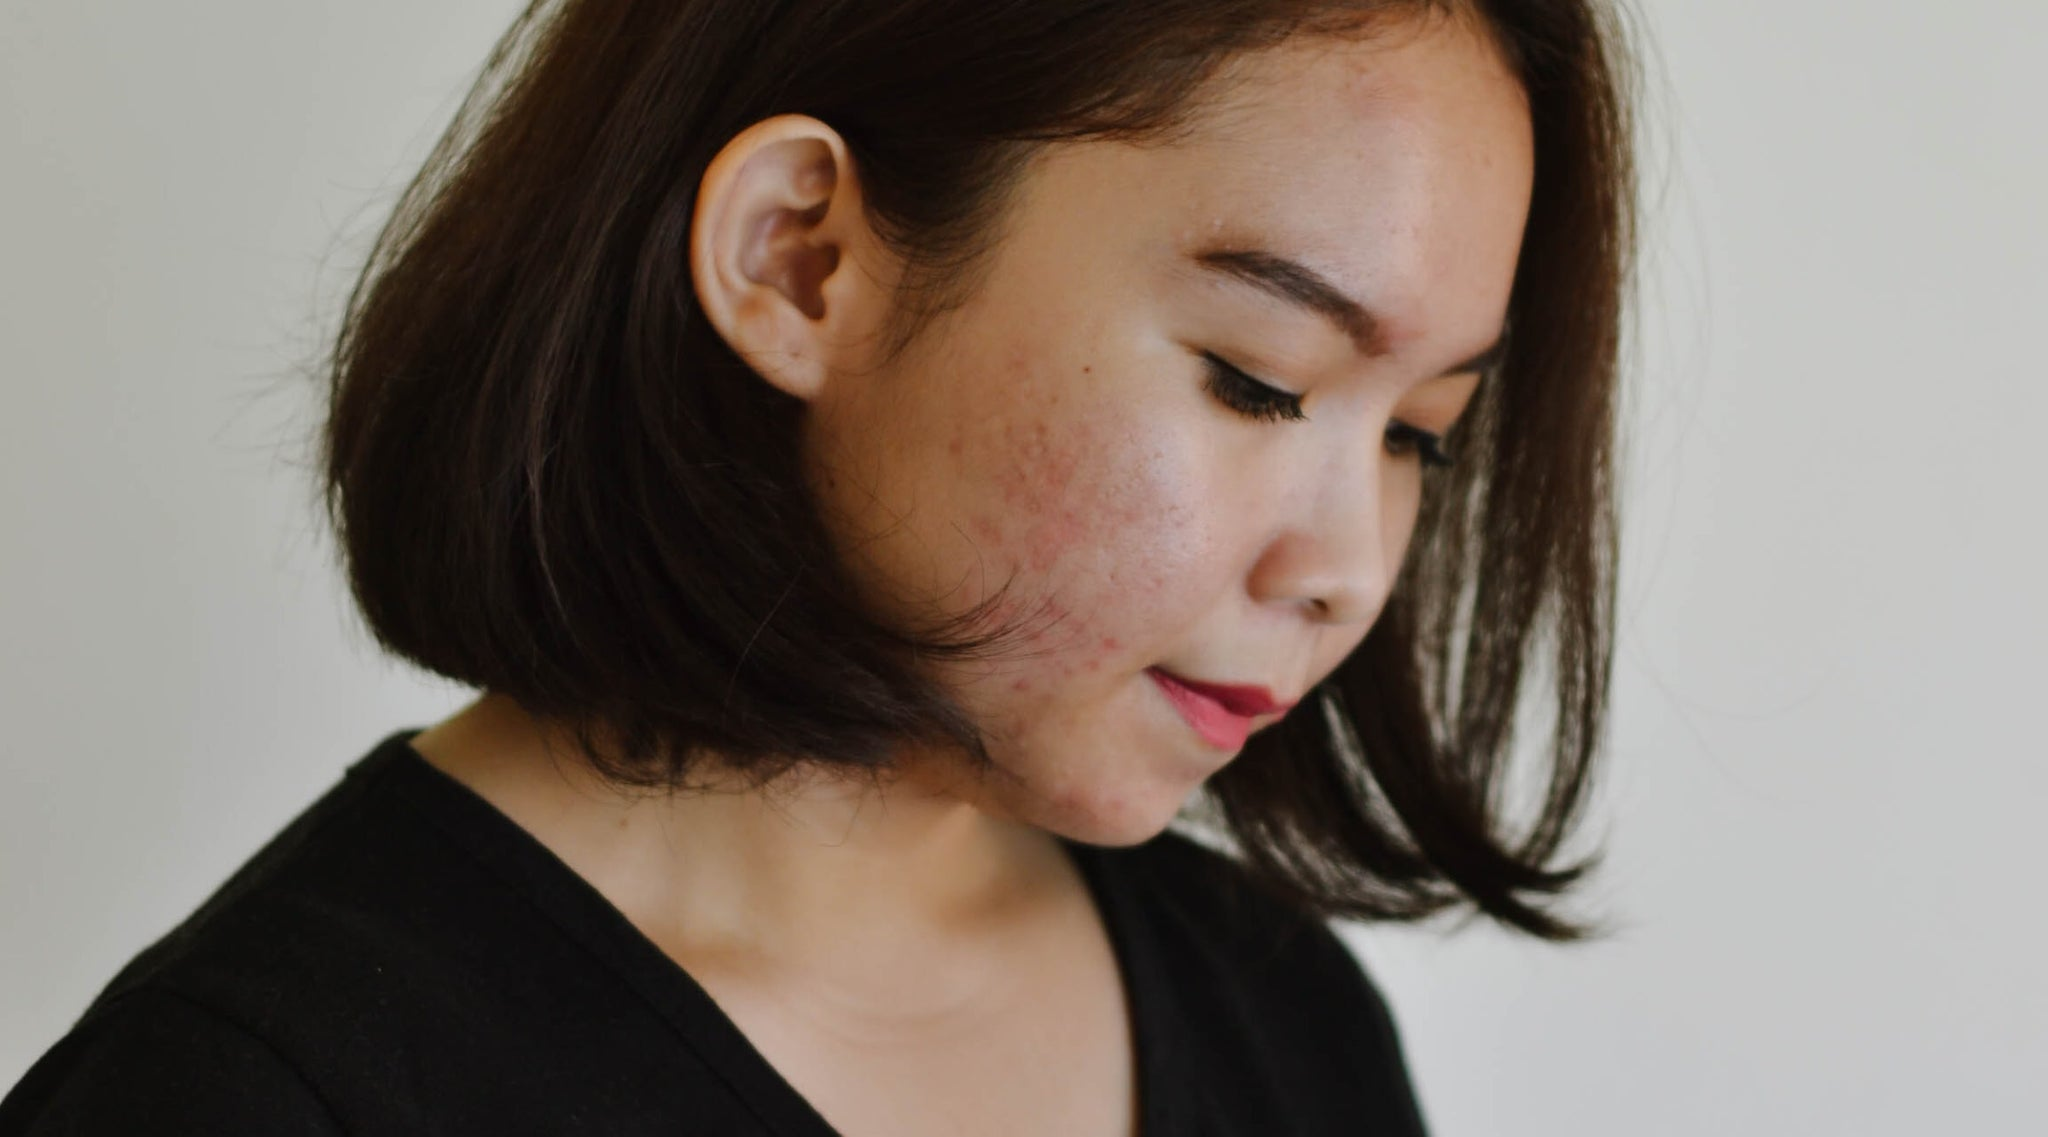 What causes Acne? | A word from our experts